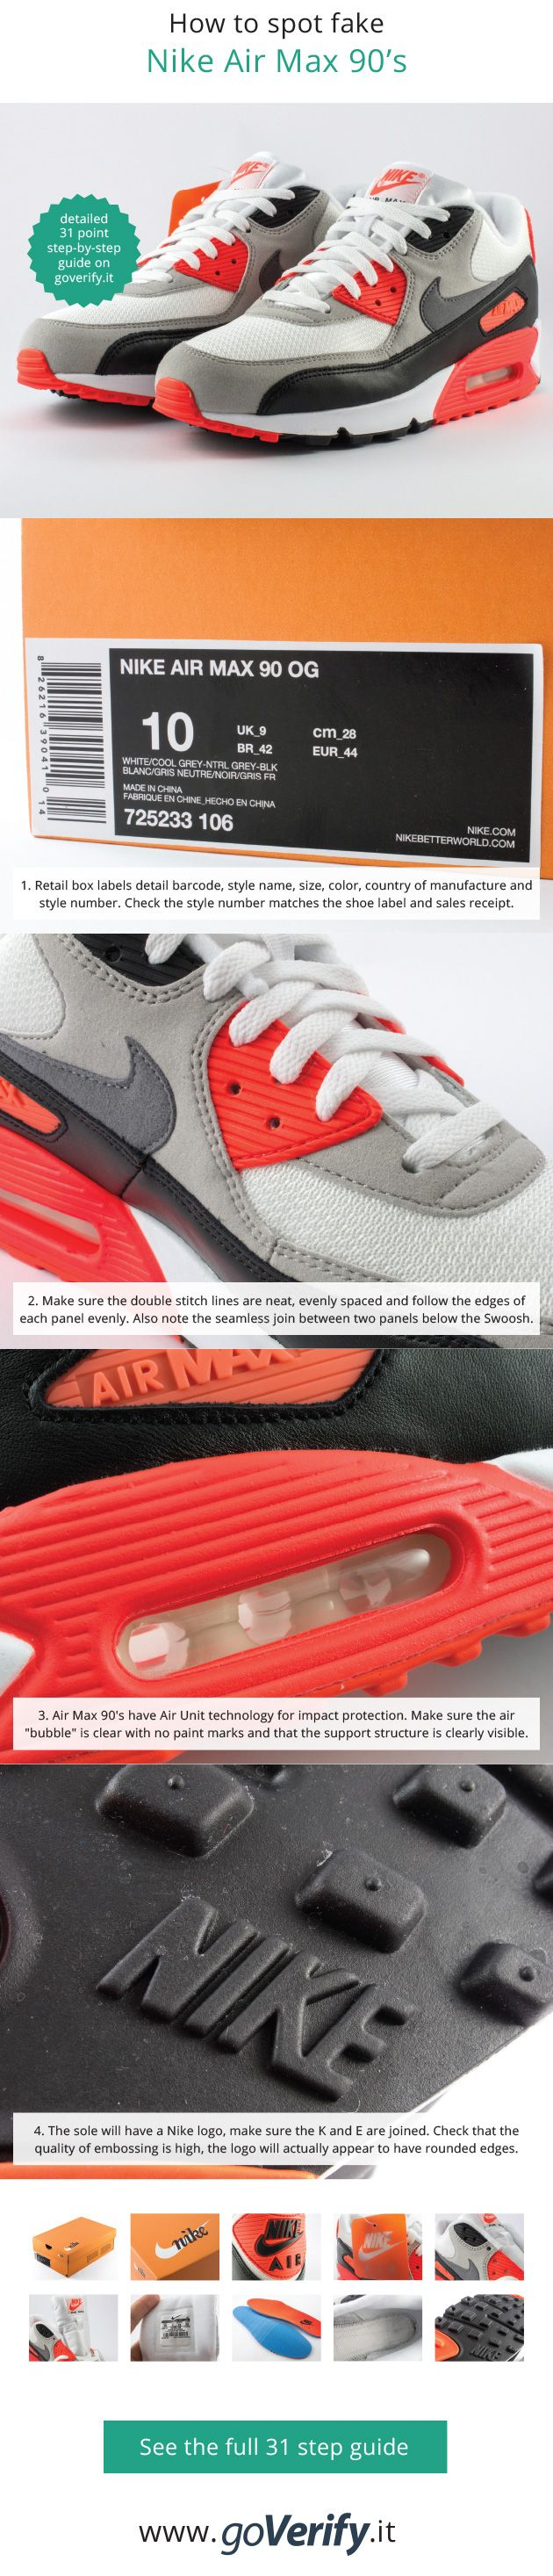 cheaper 26db5 e31e1 ... How to spot fake Nike Air Max 90 OGs, go to www.goverify.